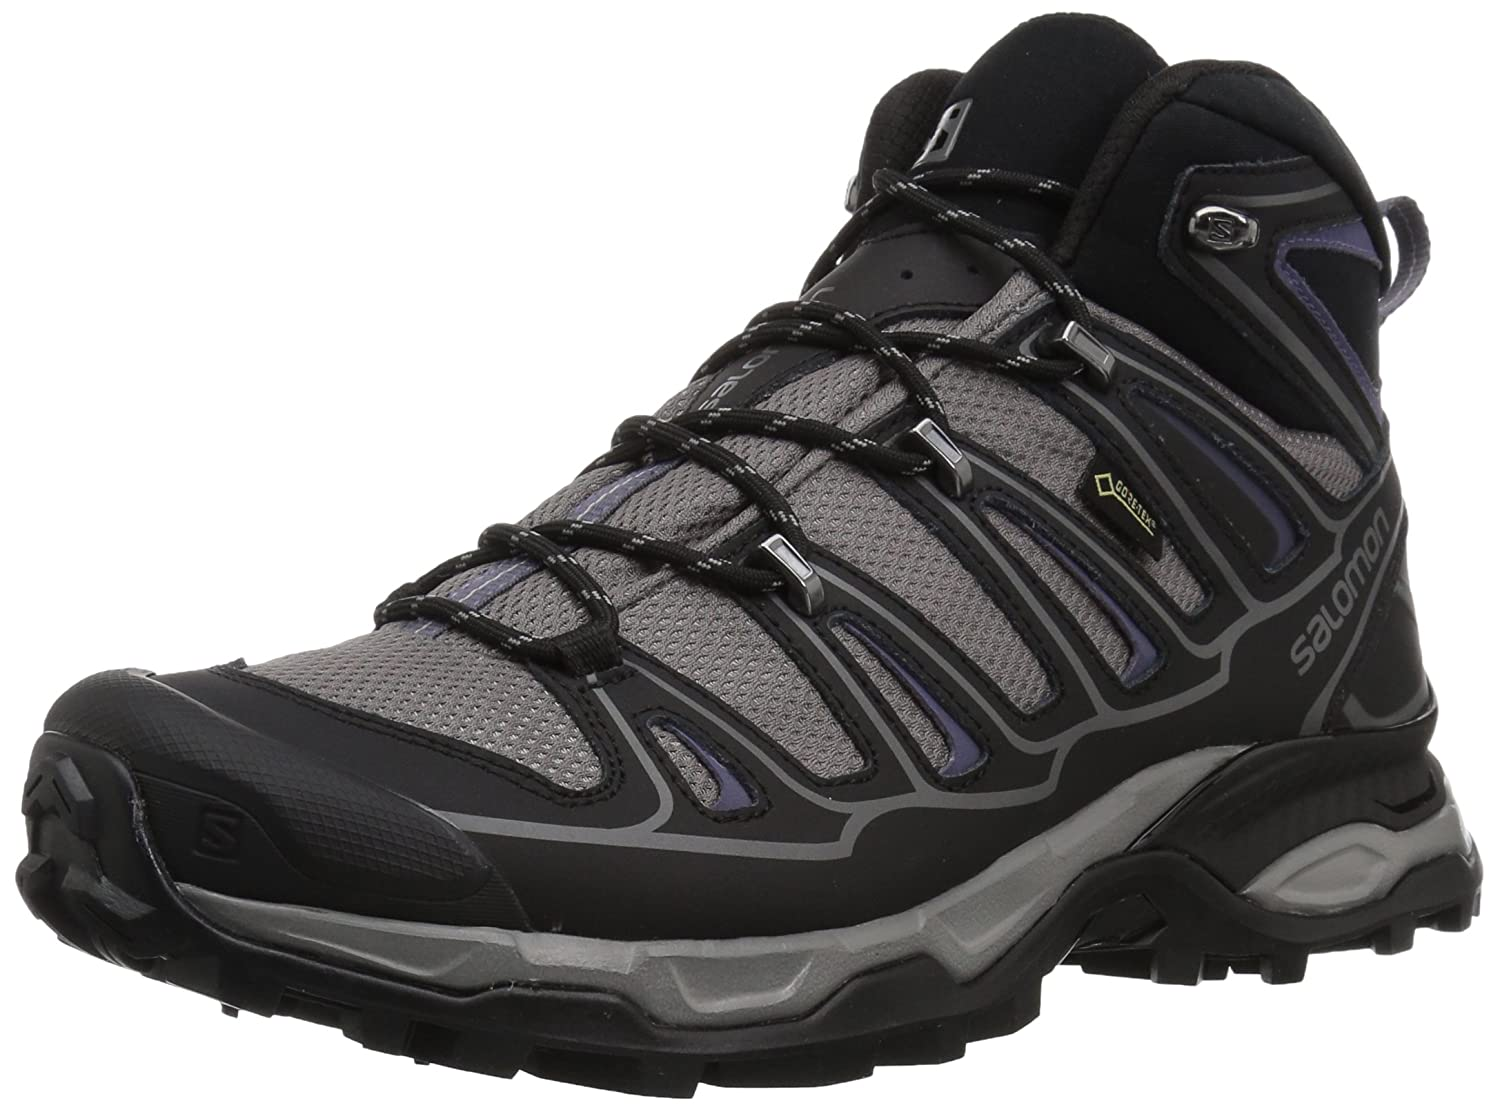 Salomon Women's X Ultra Mid 2 W Spikes GTX Snow Boot B016VWFS20 5 B(M) US|Detroit/Black/Artist Grey-x